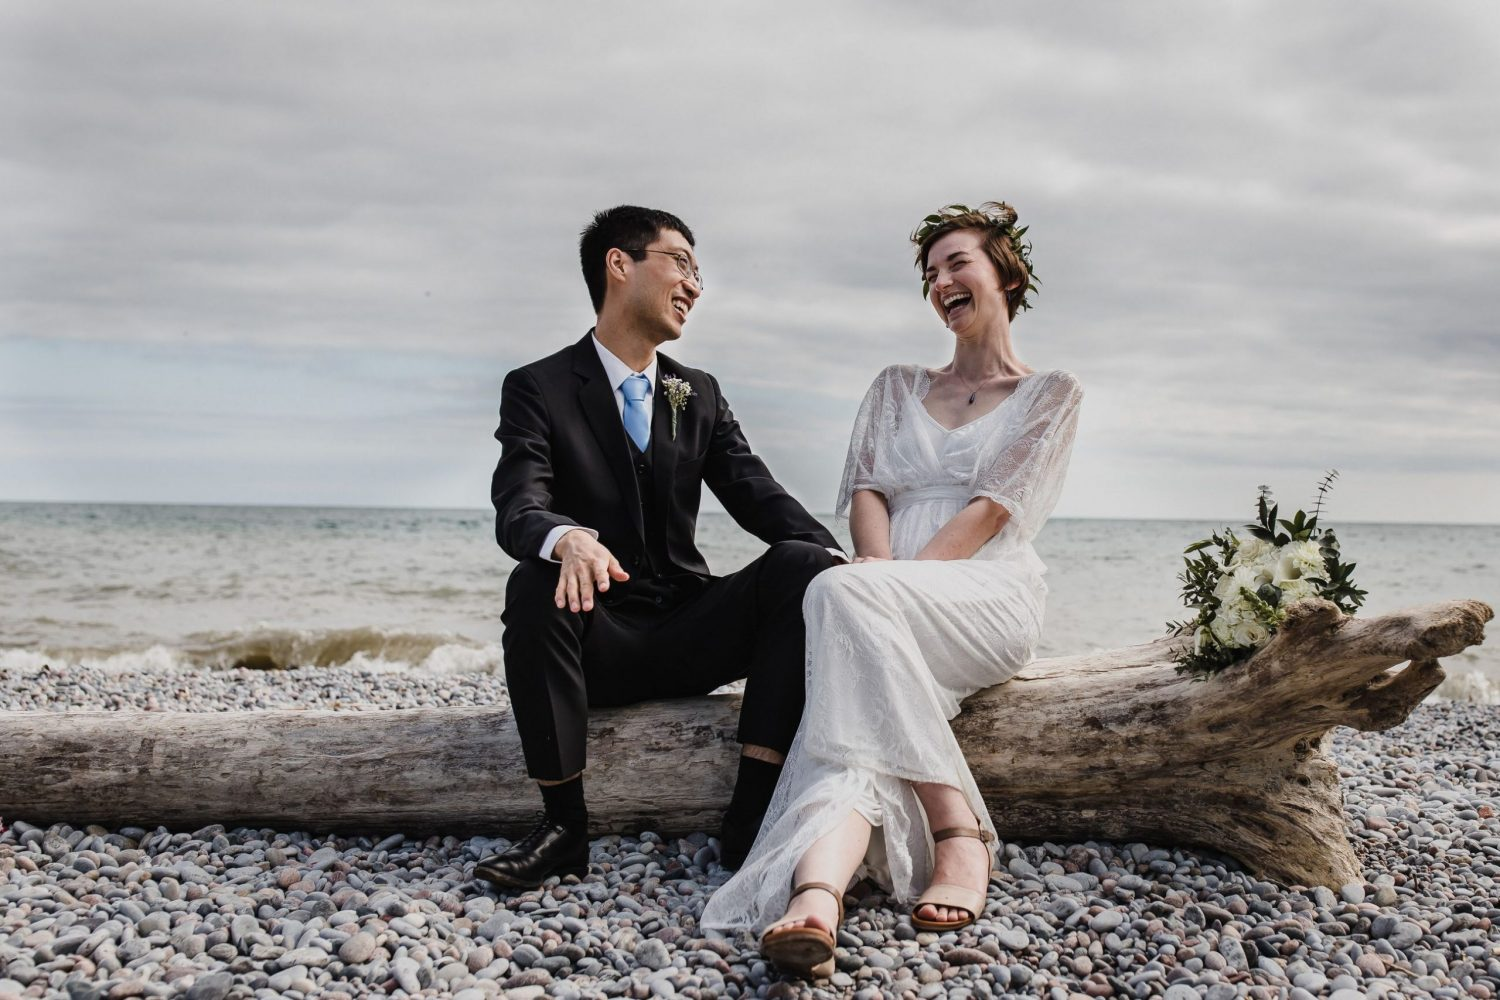 cobourg wedding photographer, beach wedding photographer, boho wedding